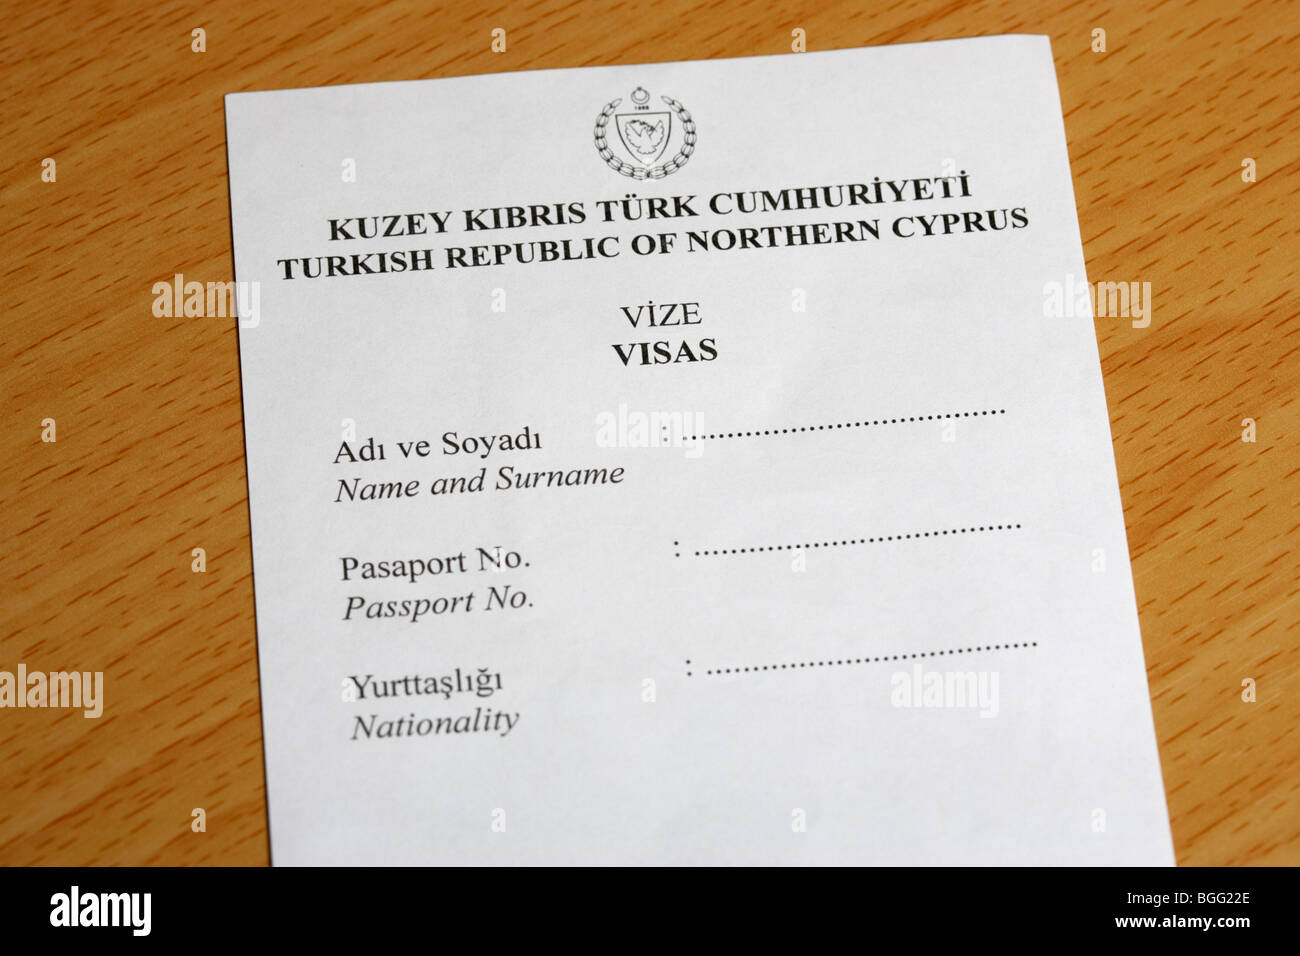 blank page supplied as entry and exit visa by the turkish republic of northern cyprus - Stock Image